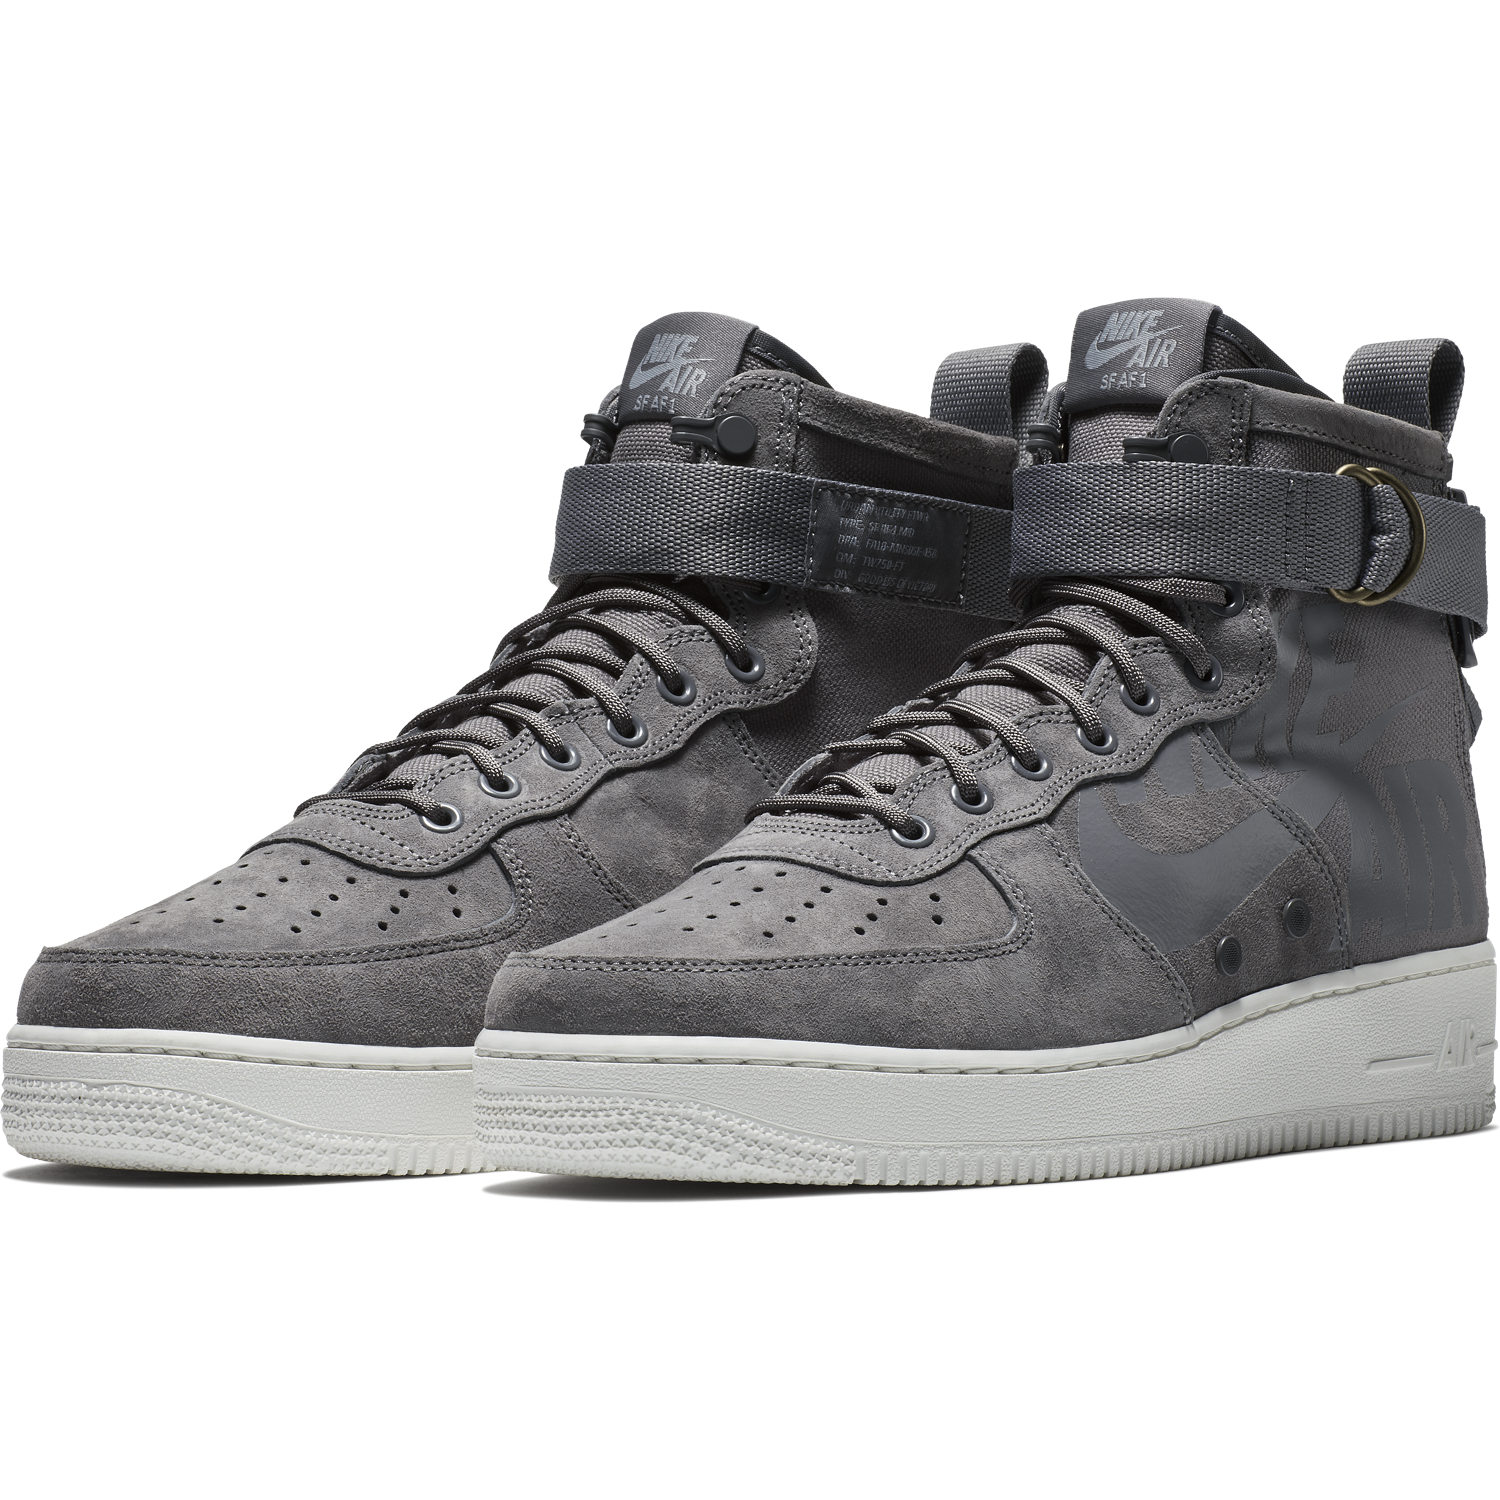 quality design f7657 d75d7 ... BUTY MĘSKIE LIFESTYLE NA ZIMĘ NIKE SF AIR FORCE 1 MID SZARE 917753-007  ...